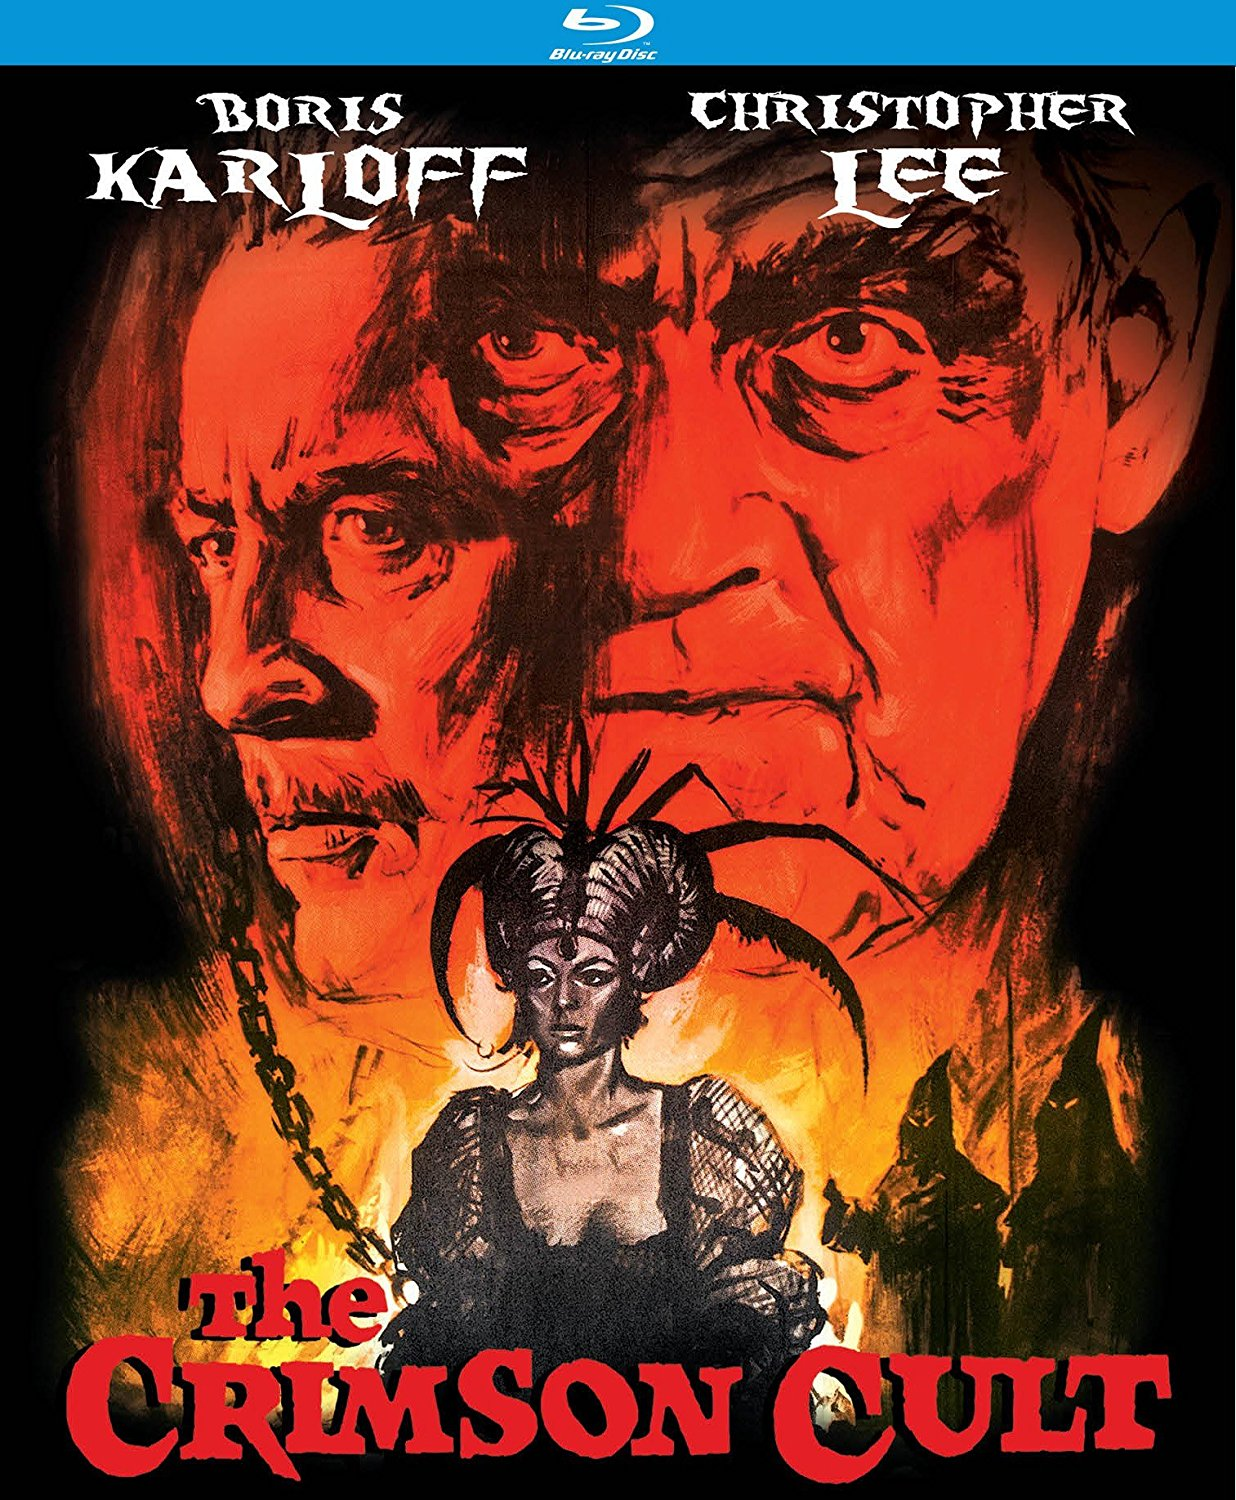 The Crimson Cult (1968), aka. Curse of the Crimson Altar, starring Boris Karloff, Christopher Lee, Mark Eden, Virginia Wetherell, Barbara Steele